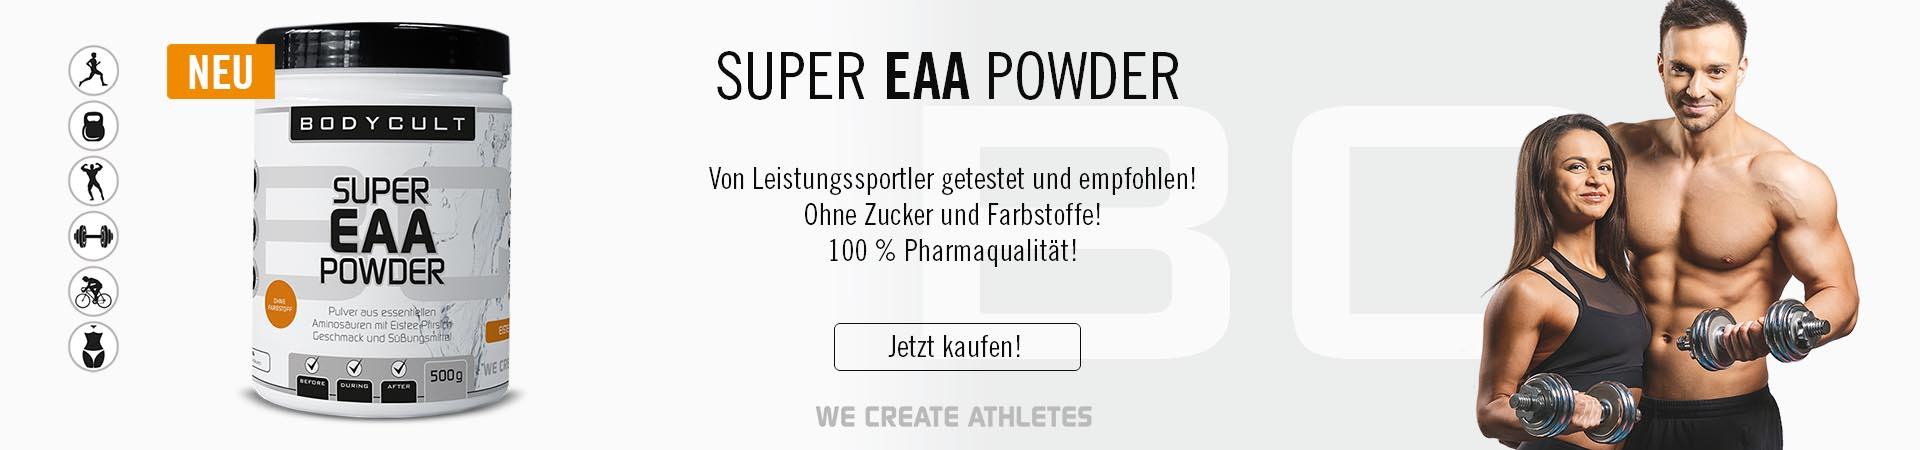 BODYCULT EAA Powder